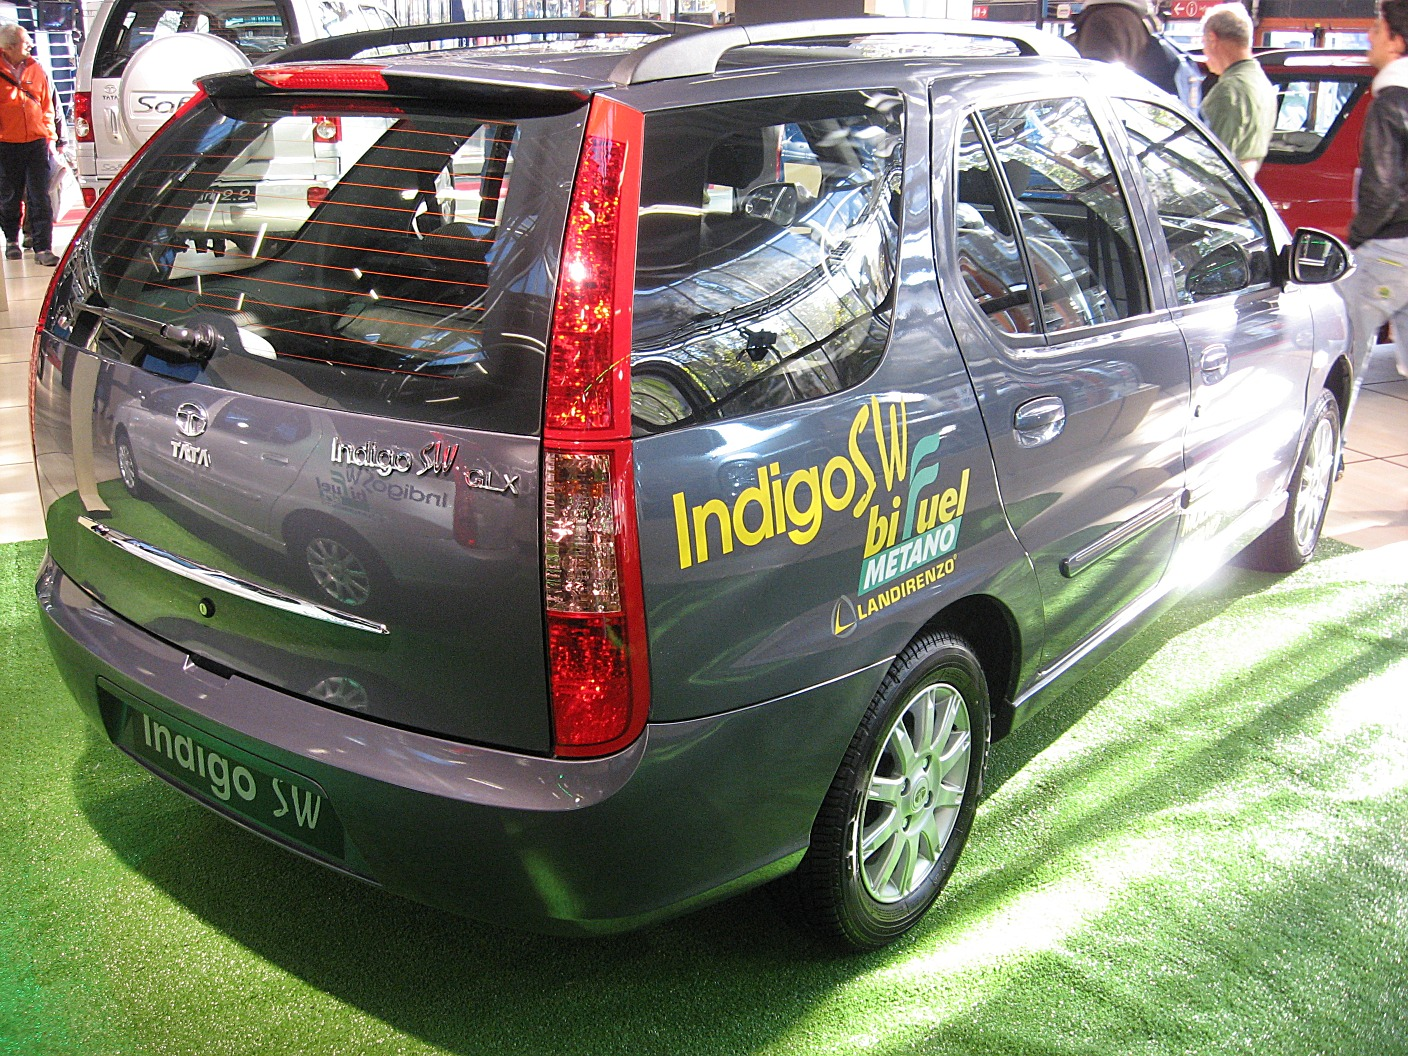 File:Tata Indigo-SW Rear.JPG - Wikimedia Commons